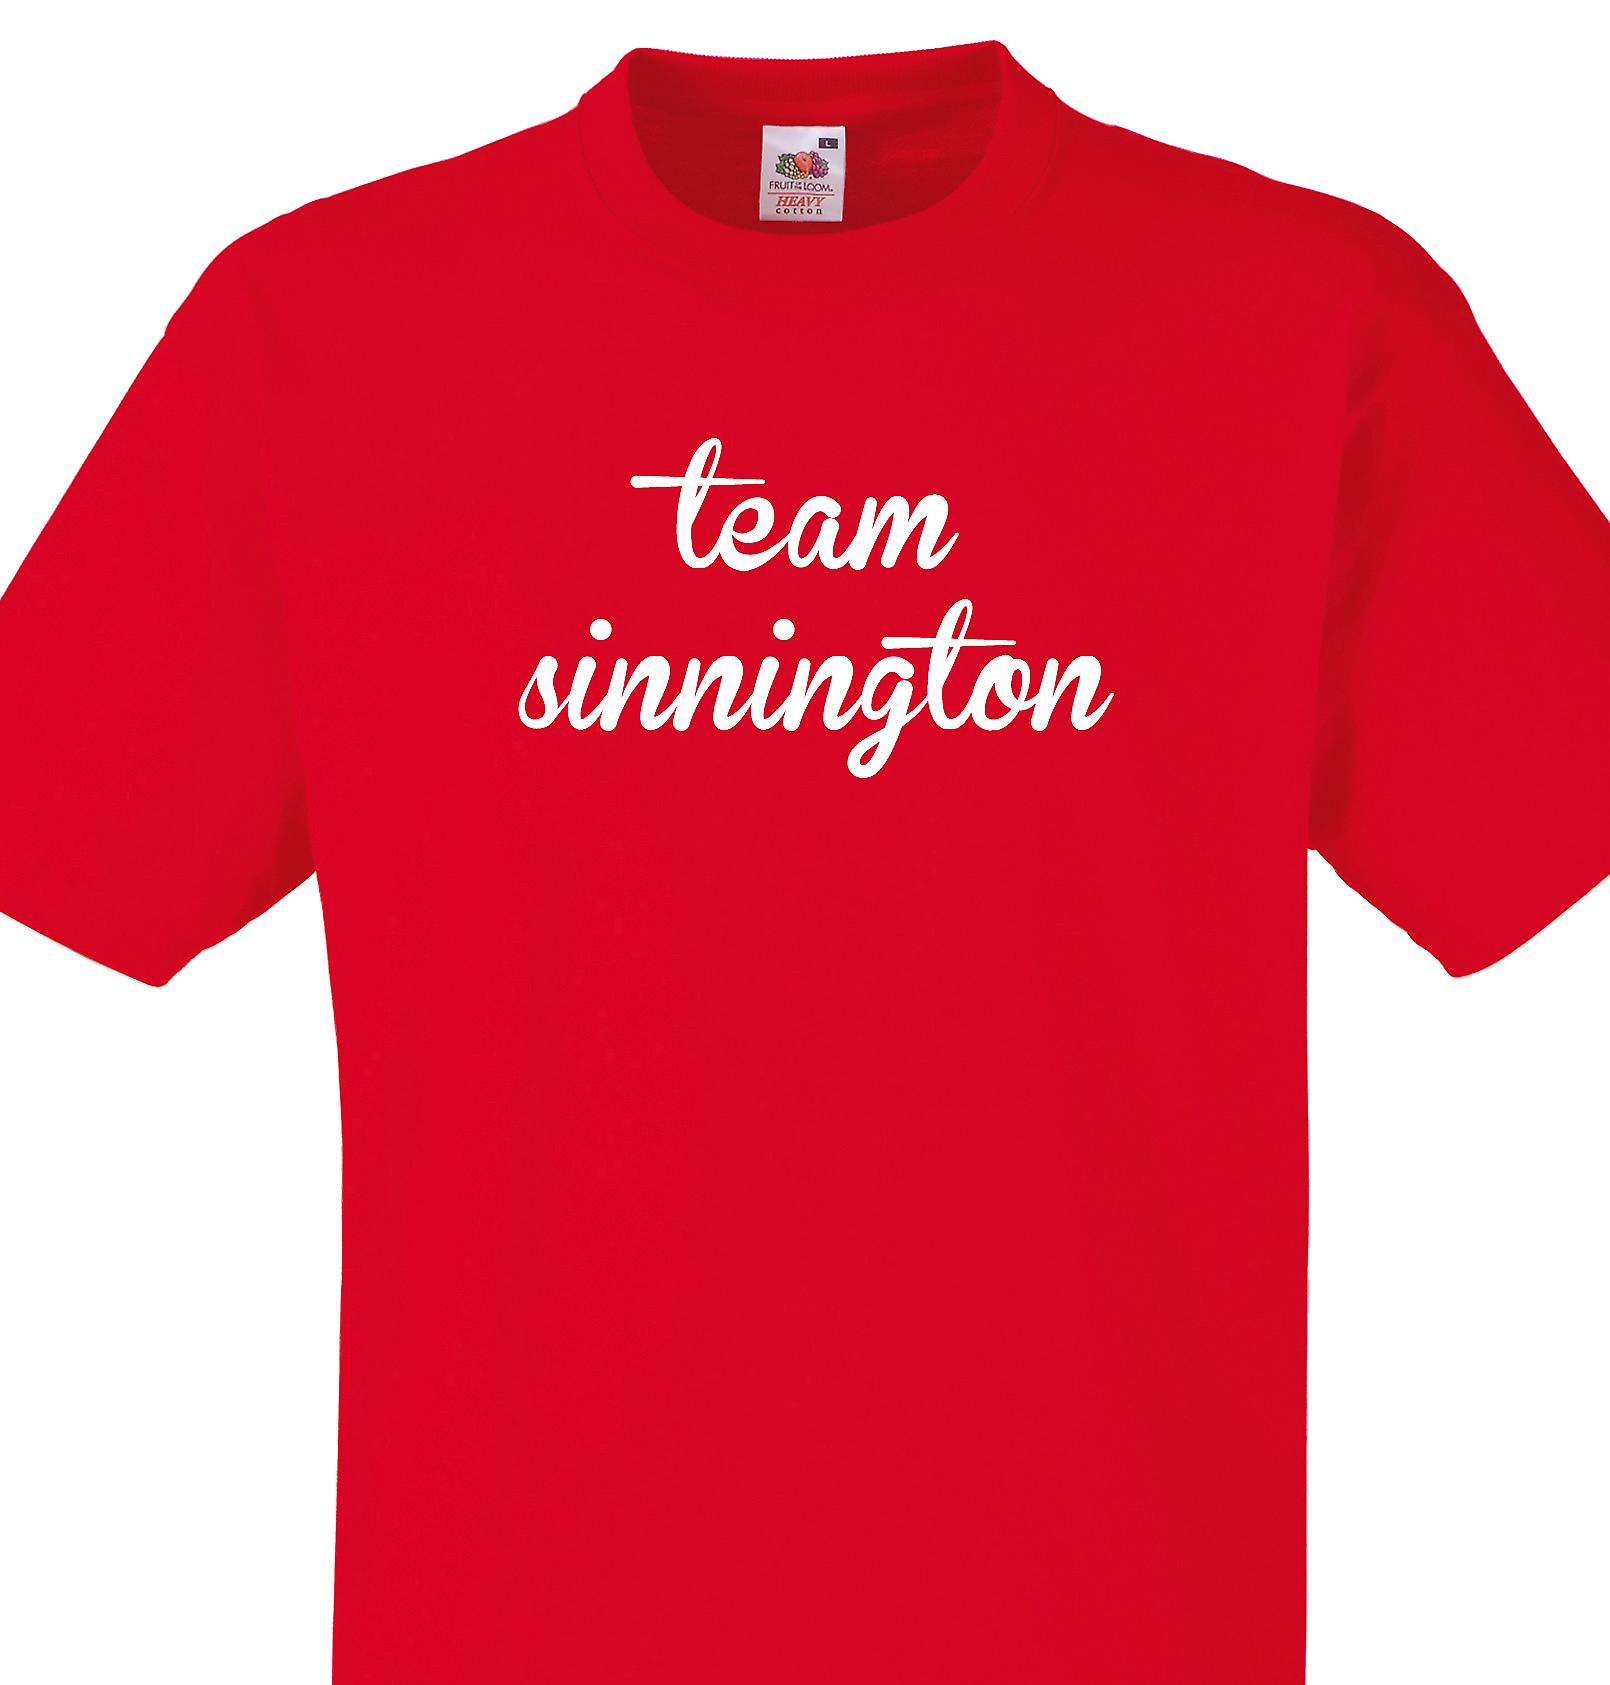 Team Sinnington Red T shirt